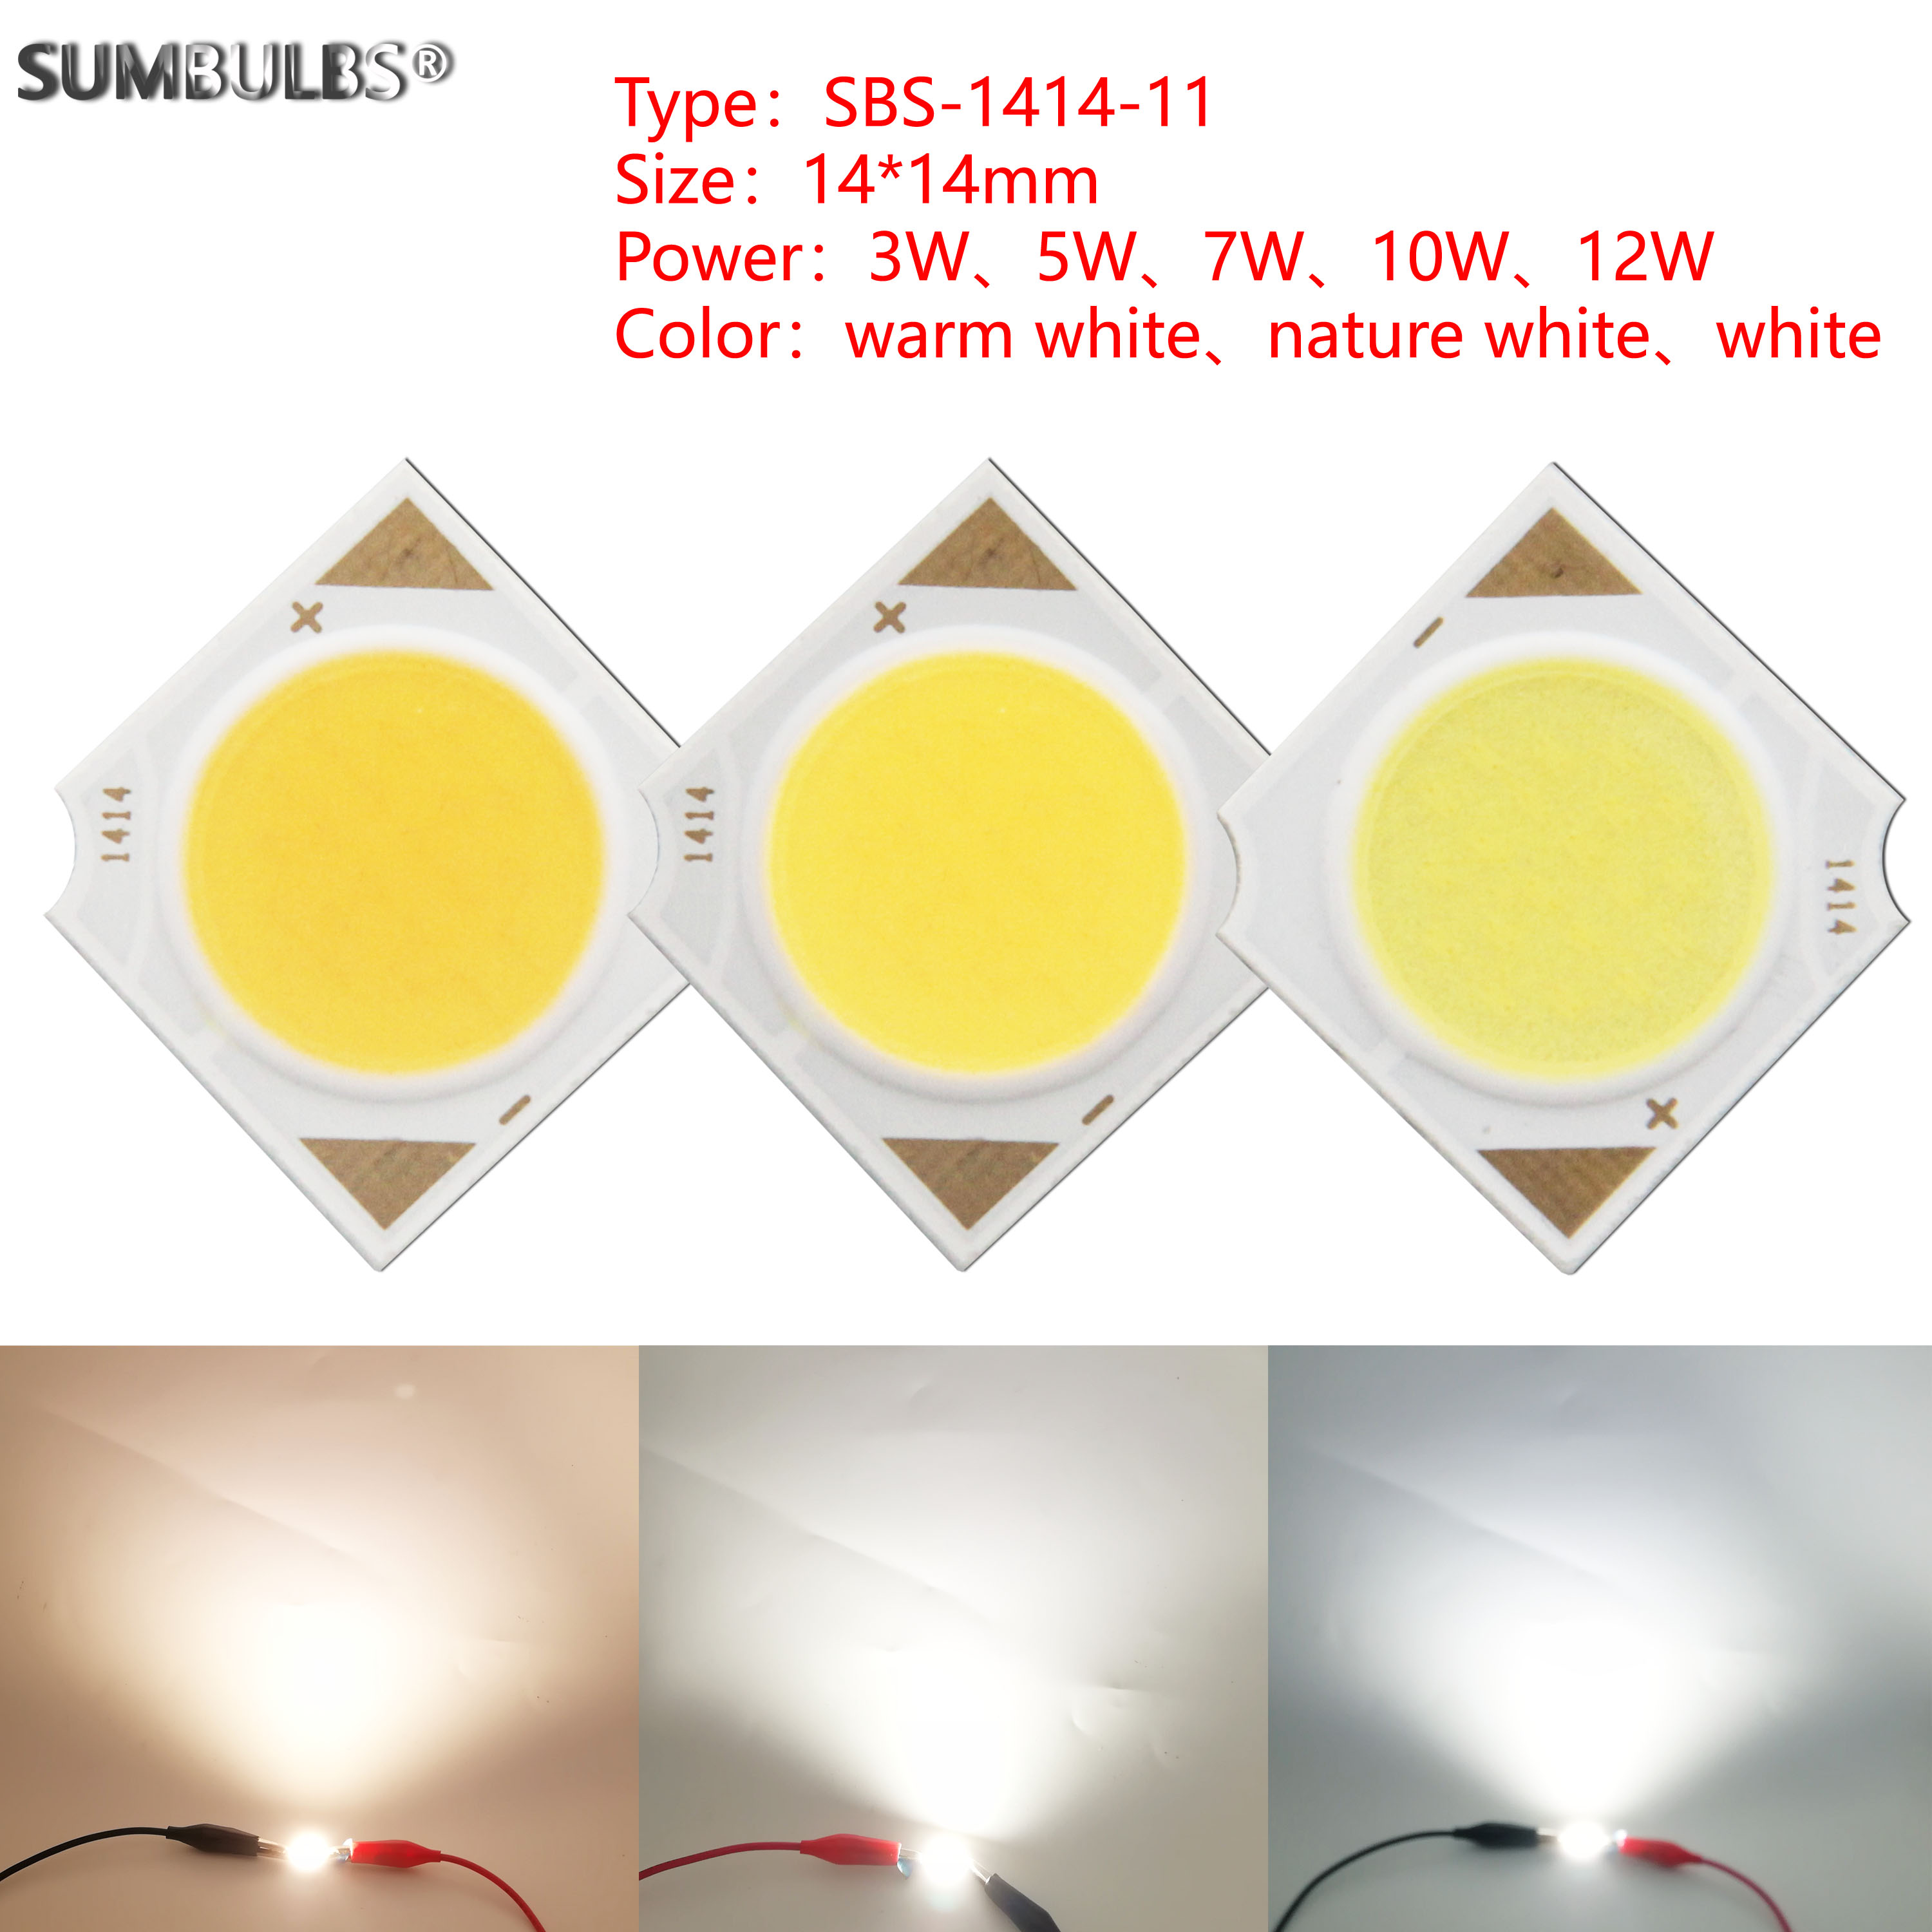 [sumbulbs] 3W 5W 7W 10W 12W 14x14mm LED COB Light Source Epistar Chips Cold Warm Nature White For Spotlight Indoor Lamp